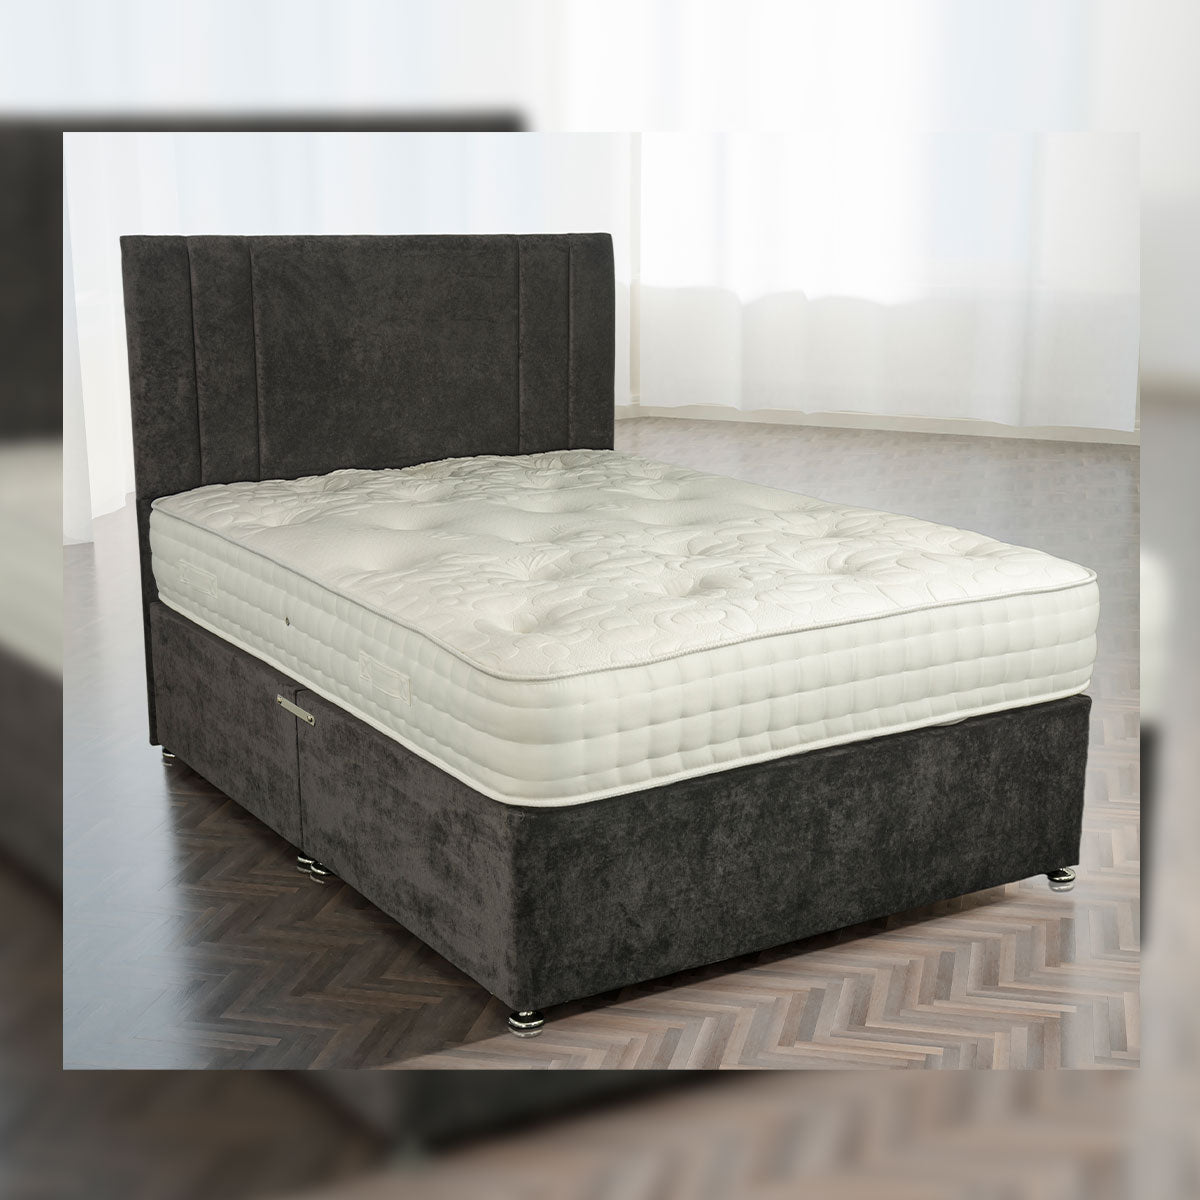 Fairmont 1000 Pocket Natural Mattress Available In Medium Medium Firm And Firm Comfort